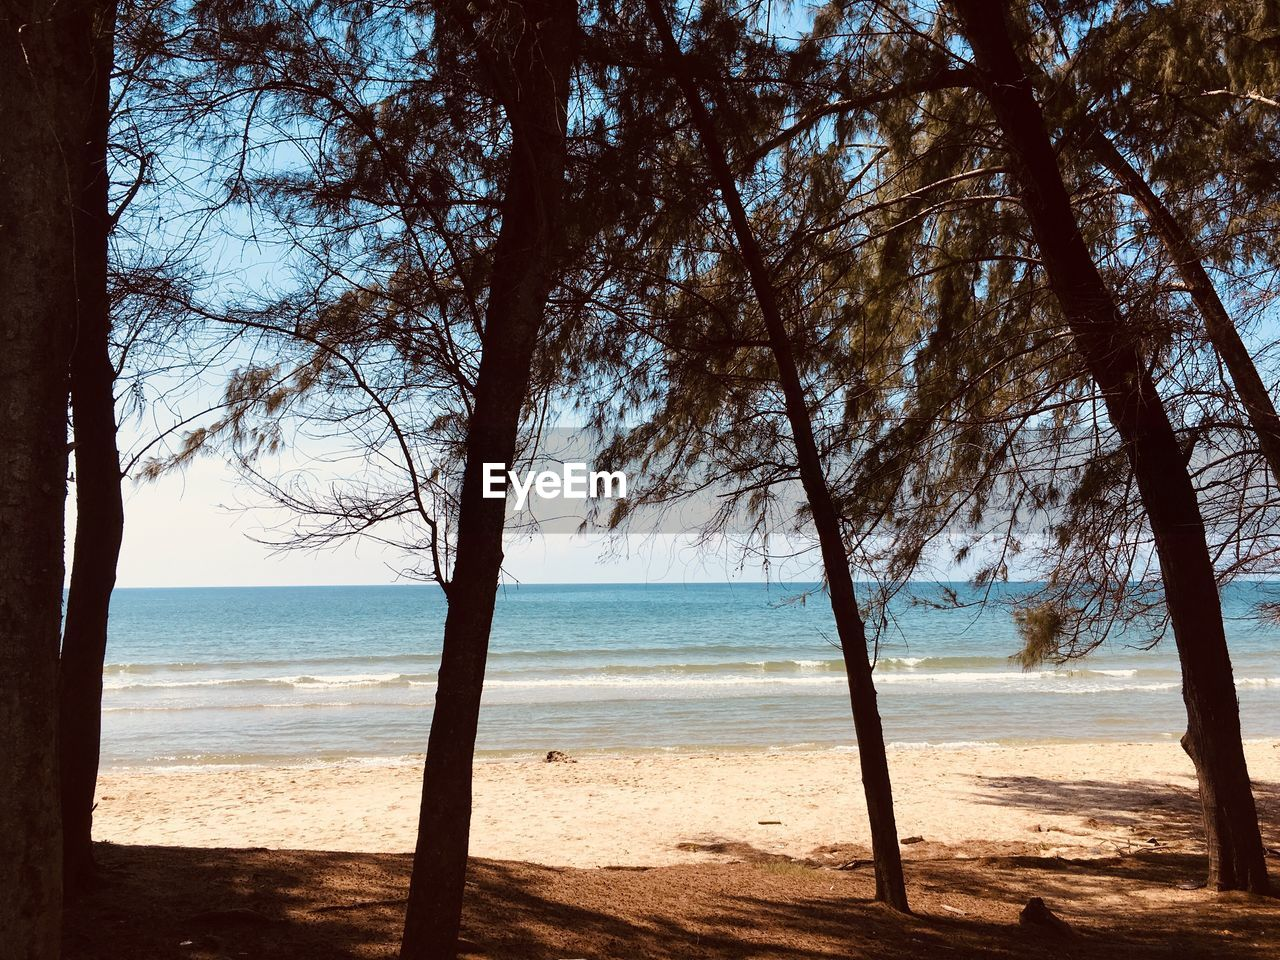 land, water, beach, sea, tree, beauty in nature, sky, plant, sand, horizon, horizon over water, tranquility, scenics - nature, nature, tranquil scene, tree trunk, day, trunk, no people, outdoors